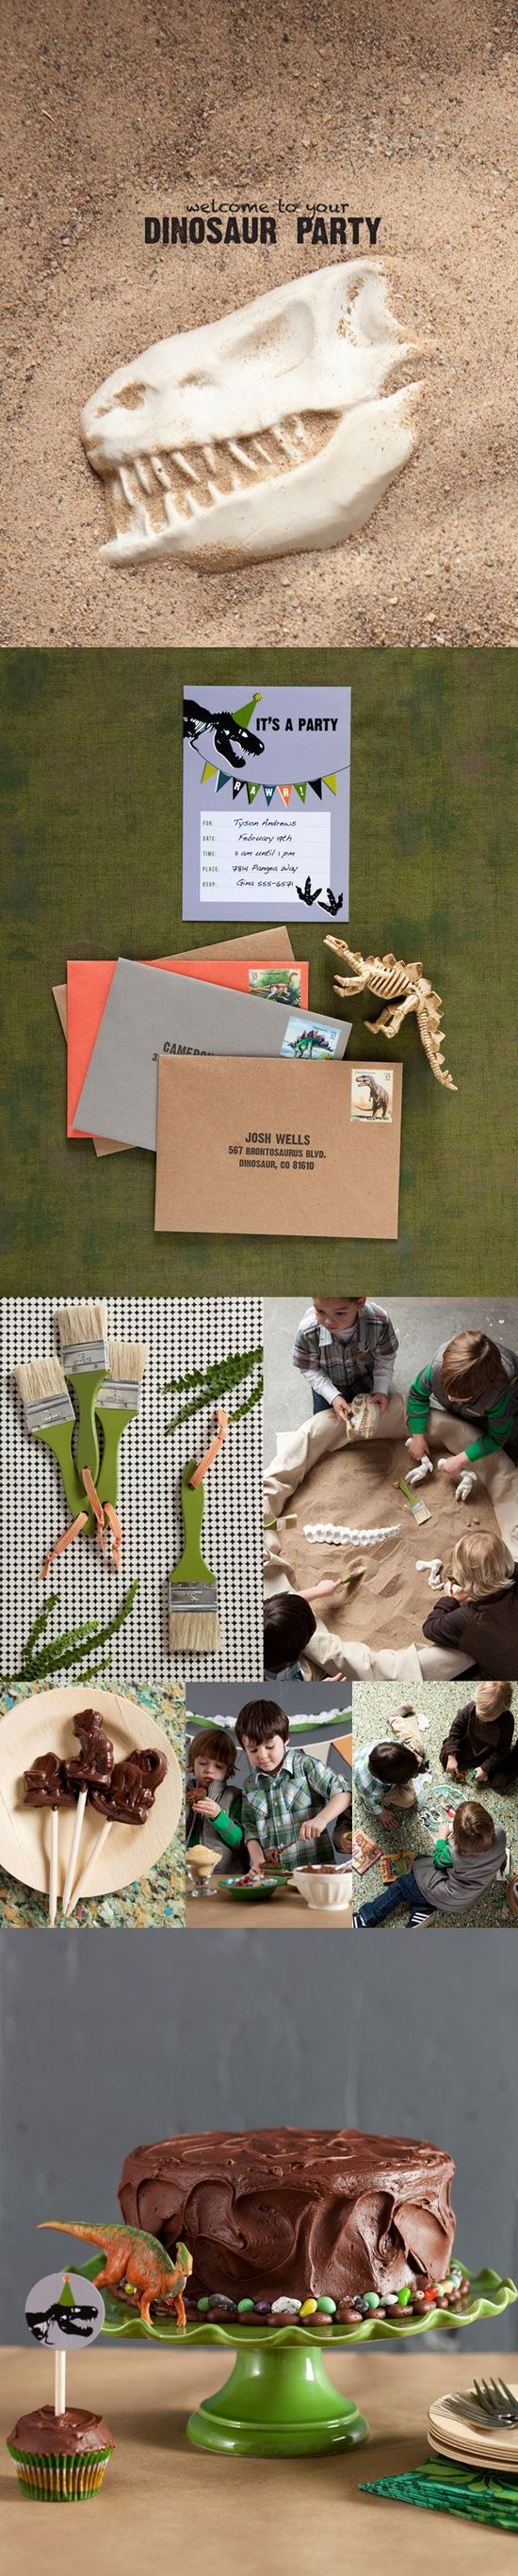 Dino dig birthday party - Cool idea for boys :) Or girls who like dinosaurs…